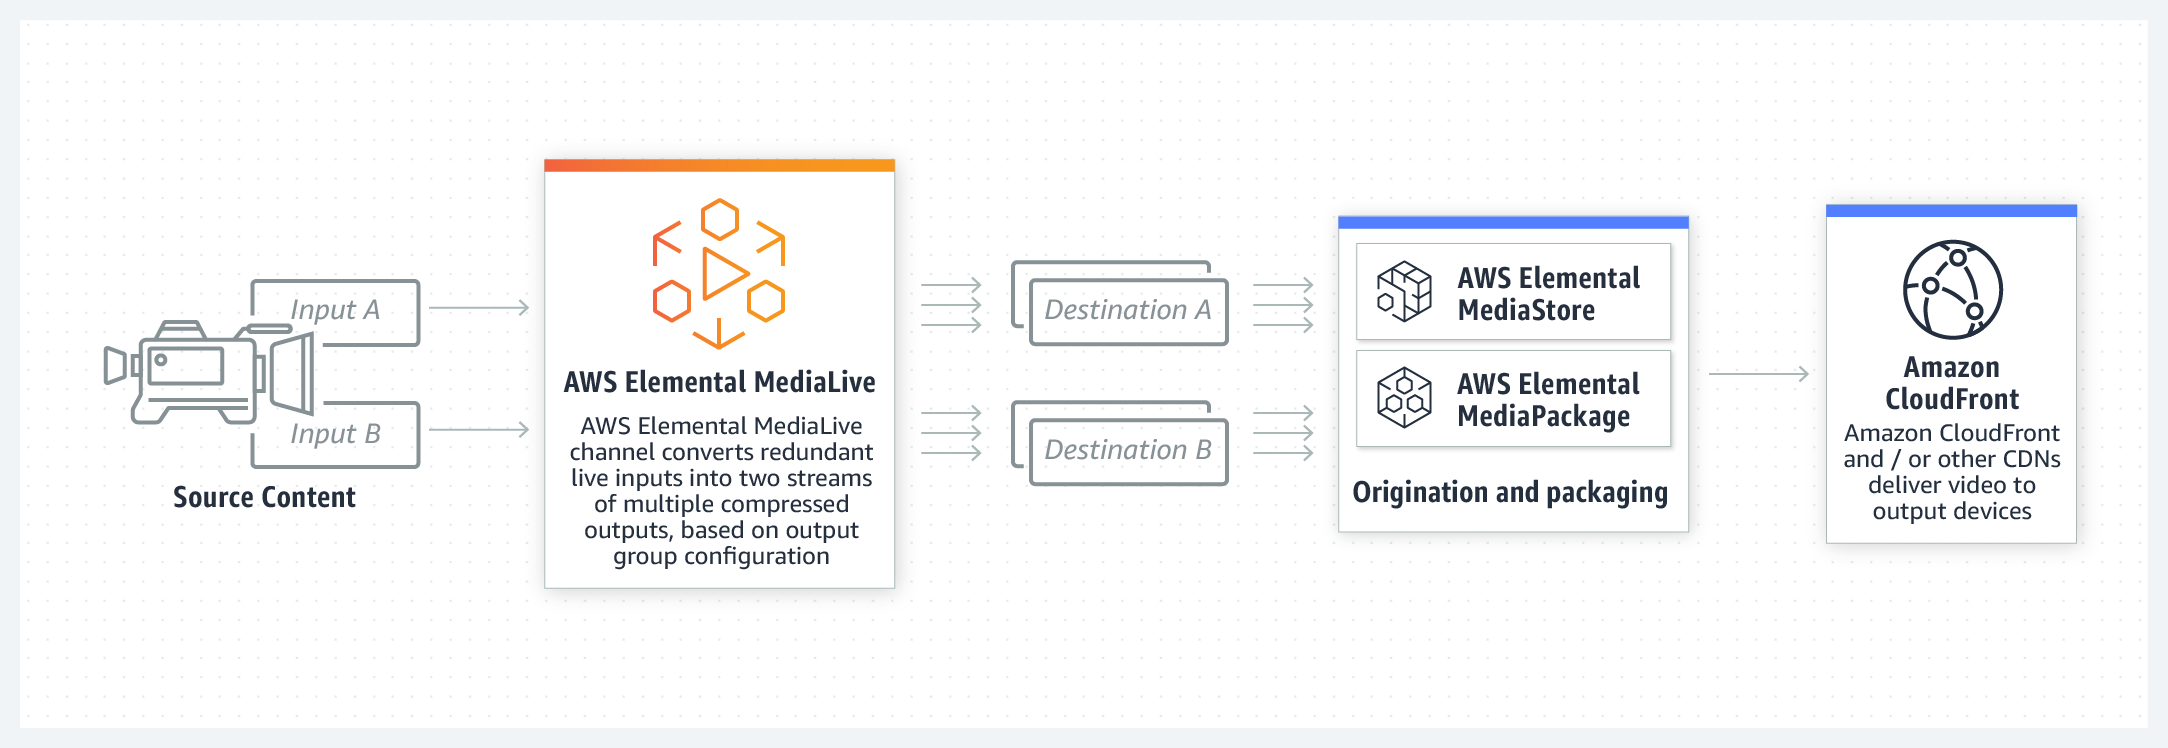 product-page-diagram-Elemental-MediaLive@2x